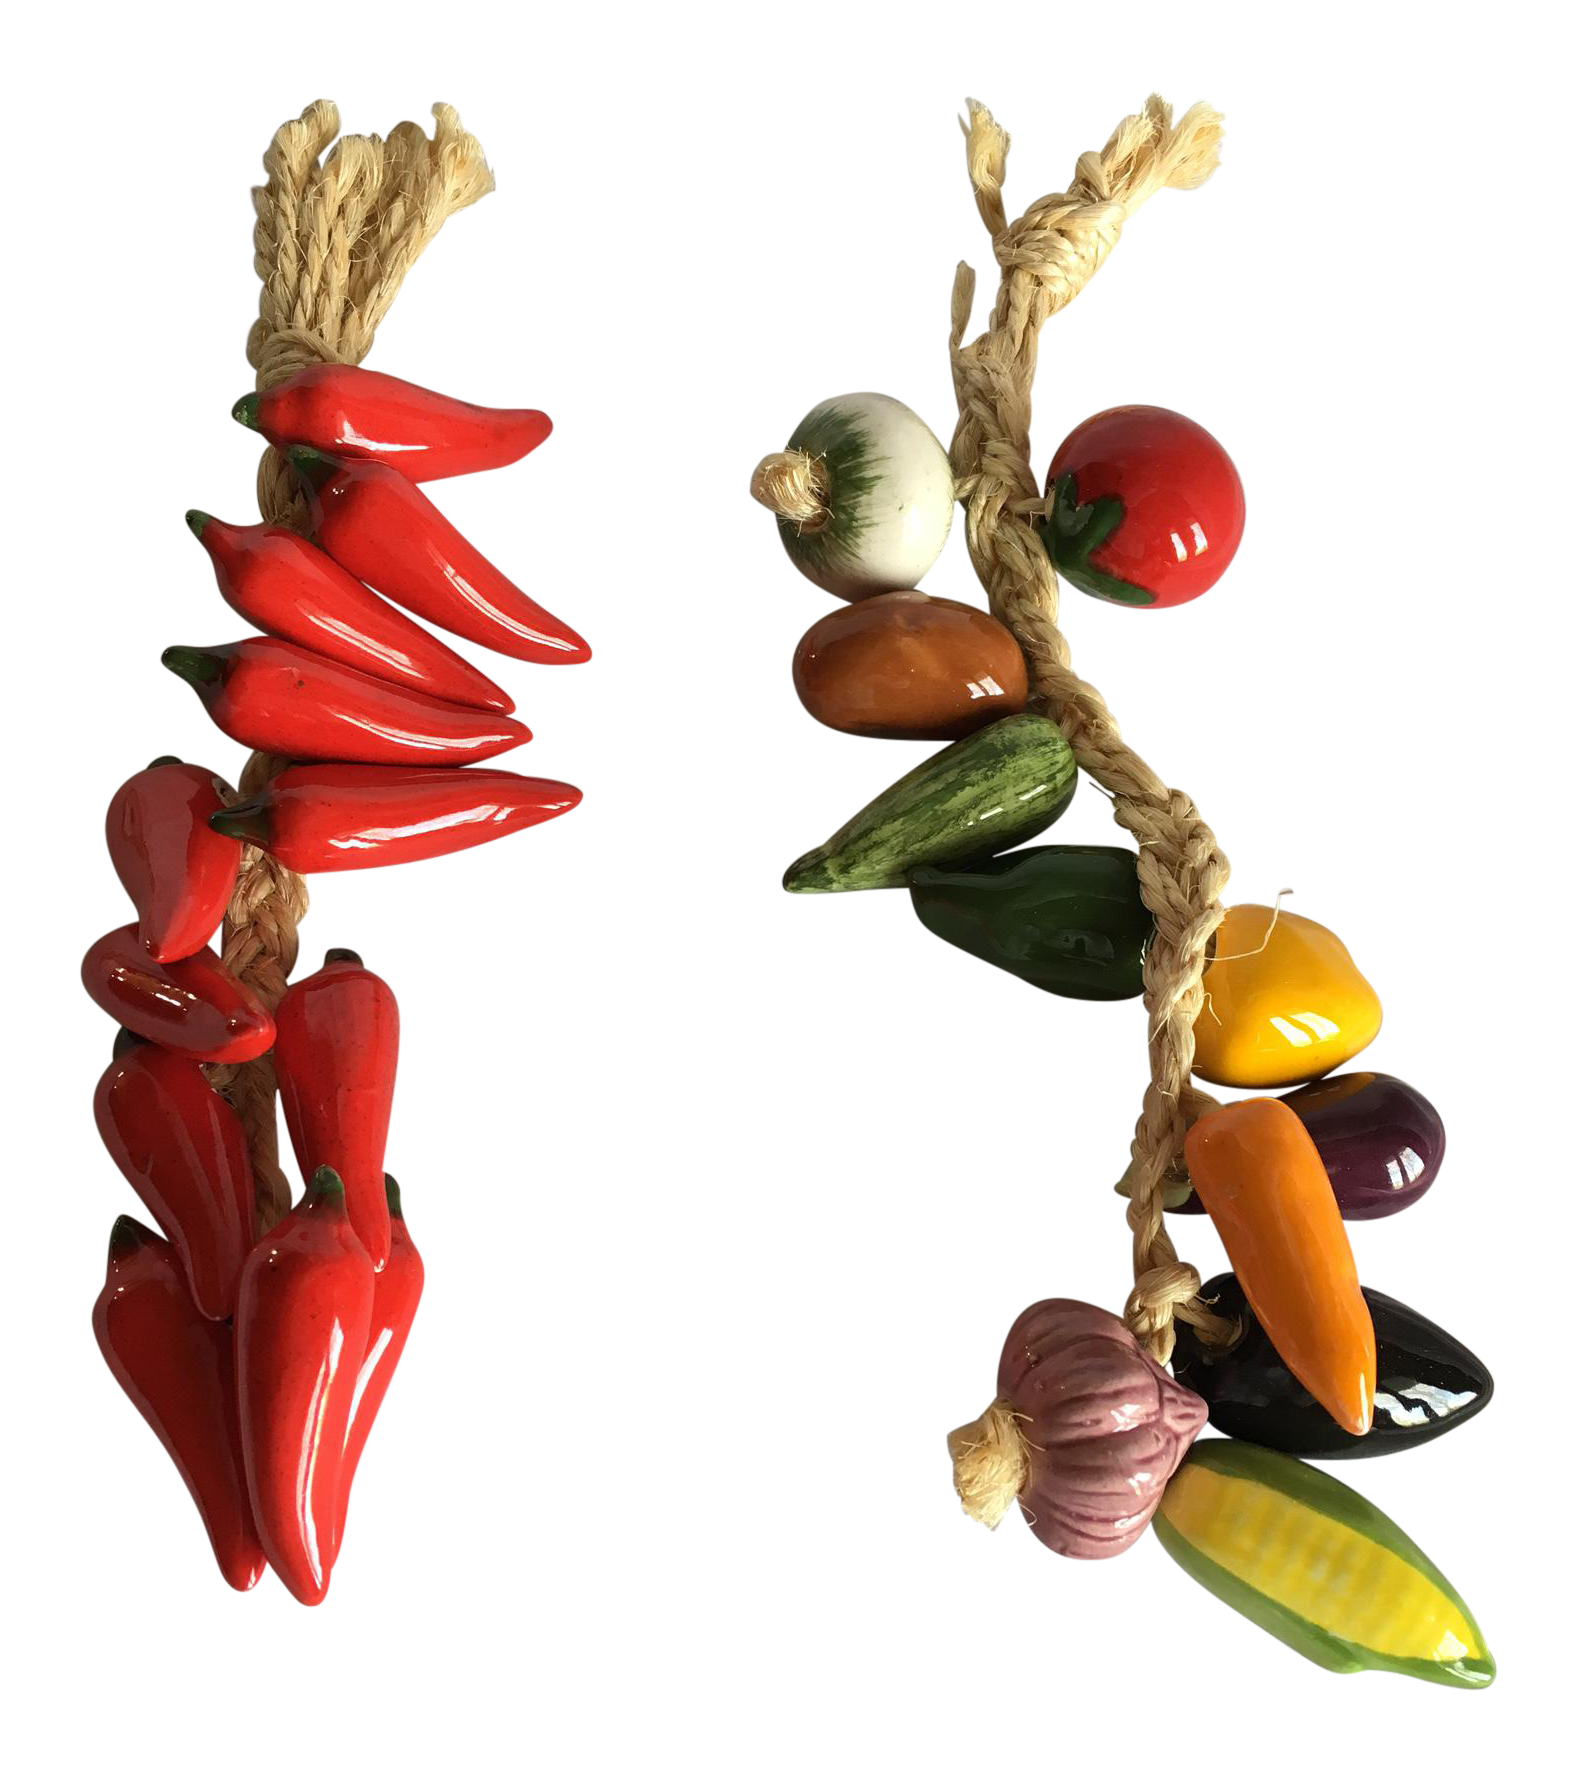 Chili drawing ristra. Mexican ceramic vegetables rope